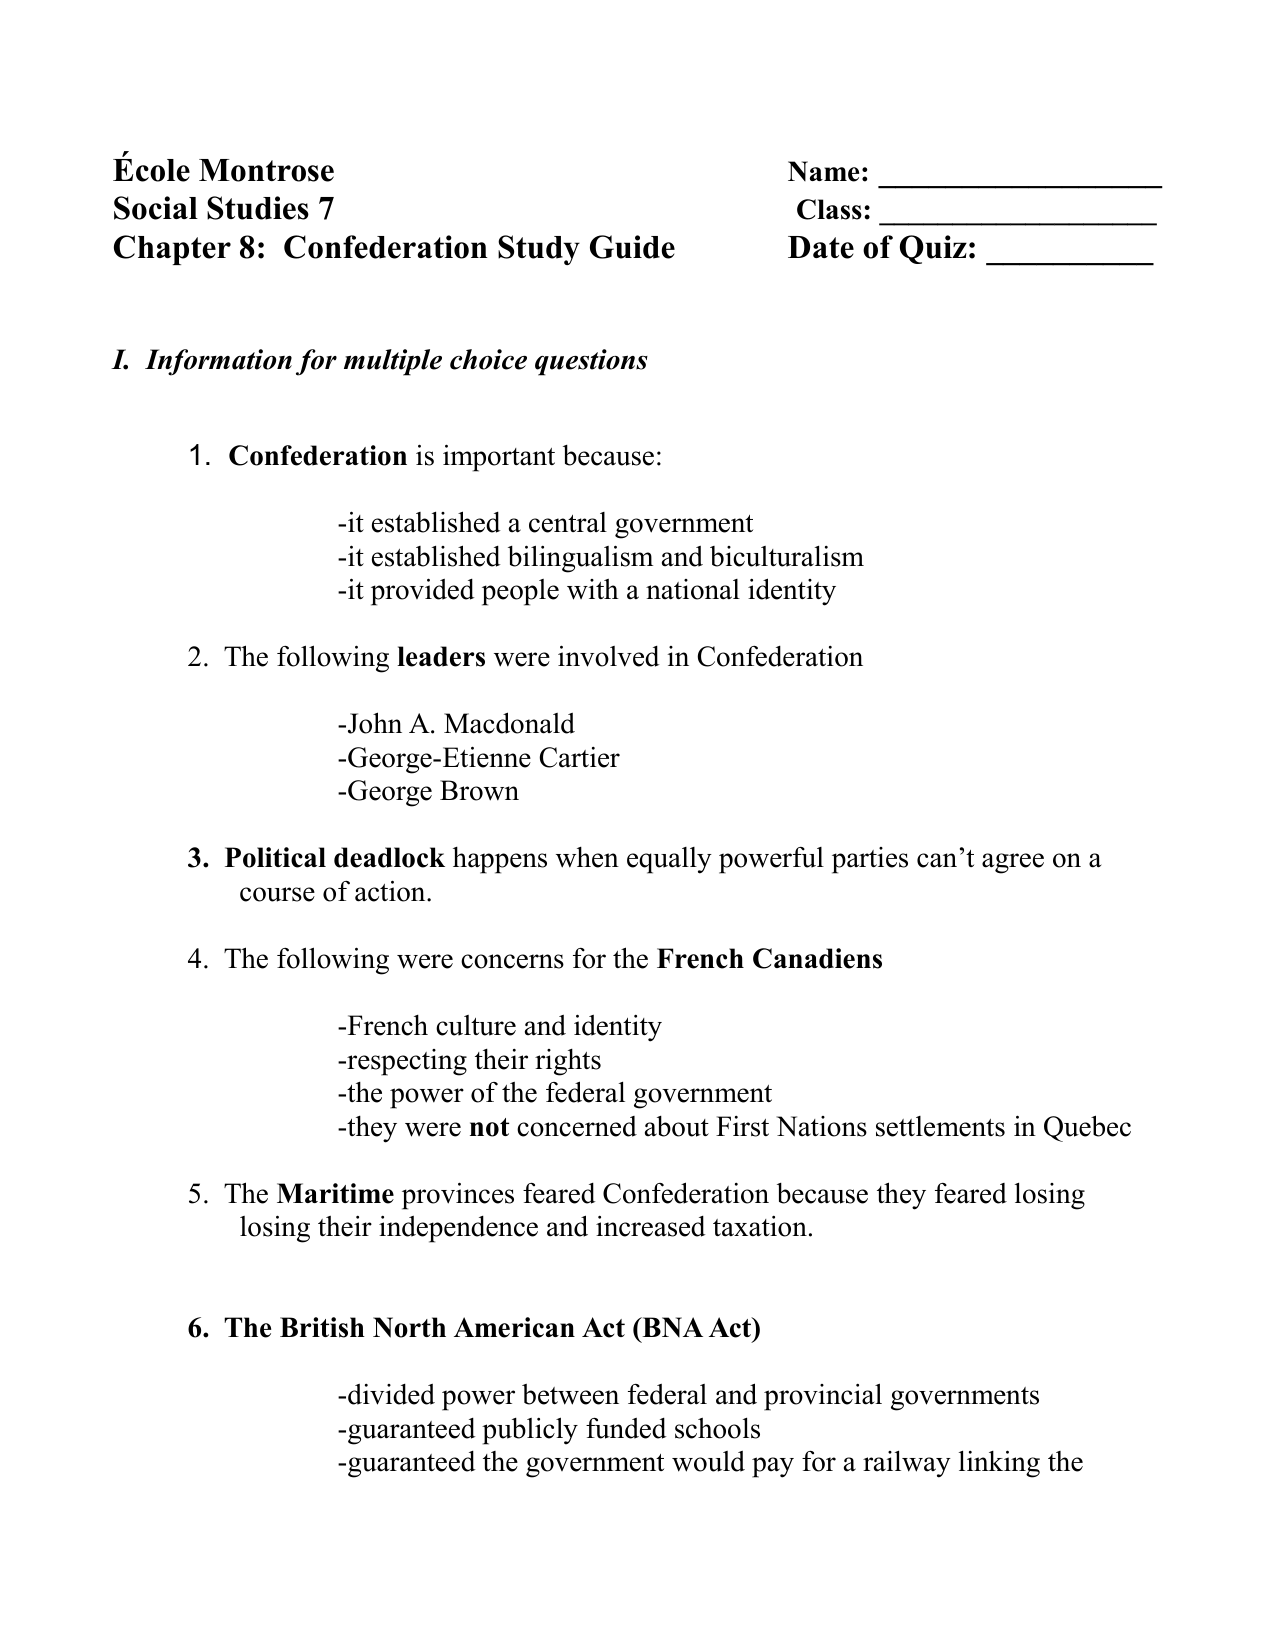 Our Canada Chapter 8 Study Guide Resource Preview